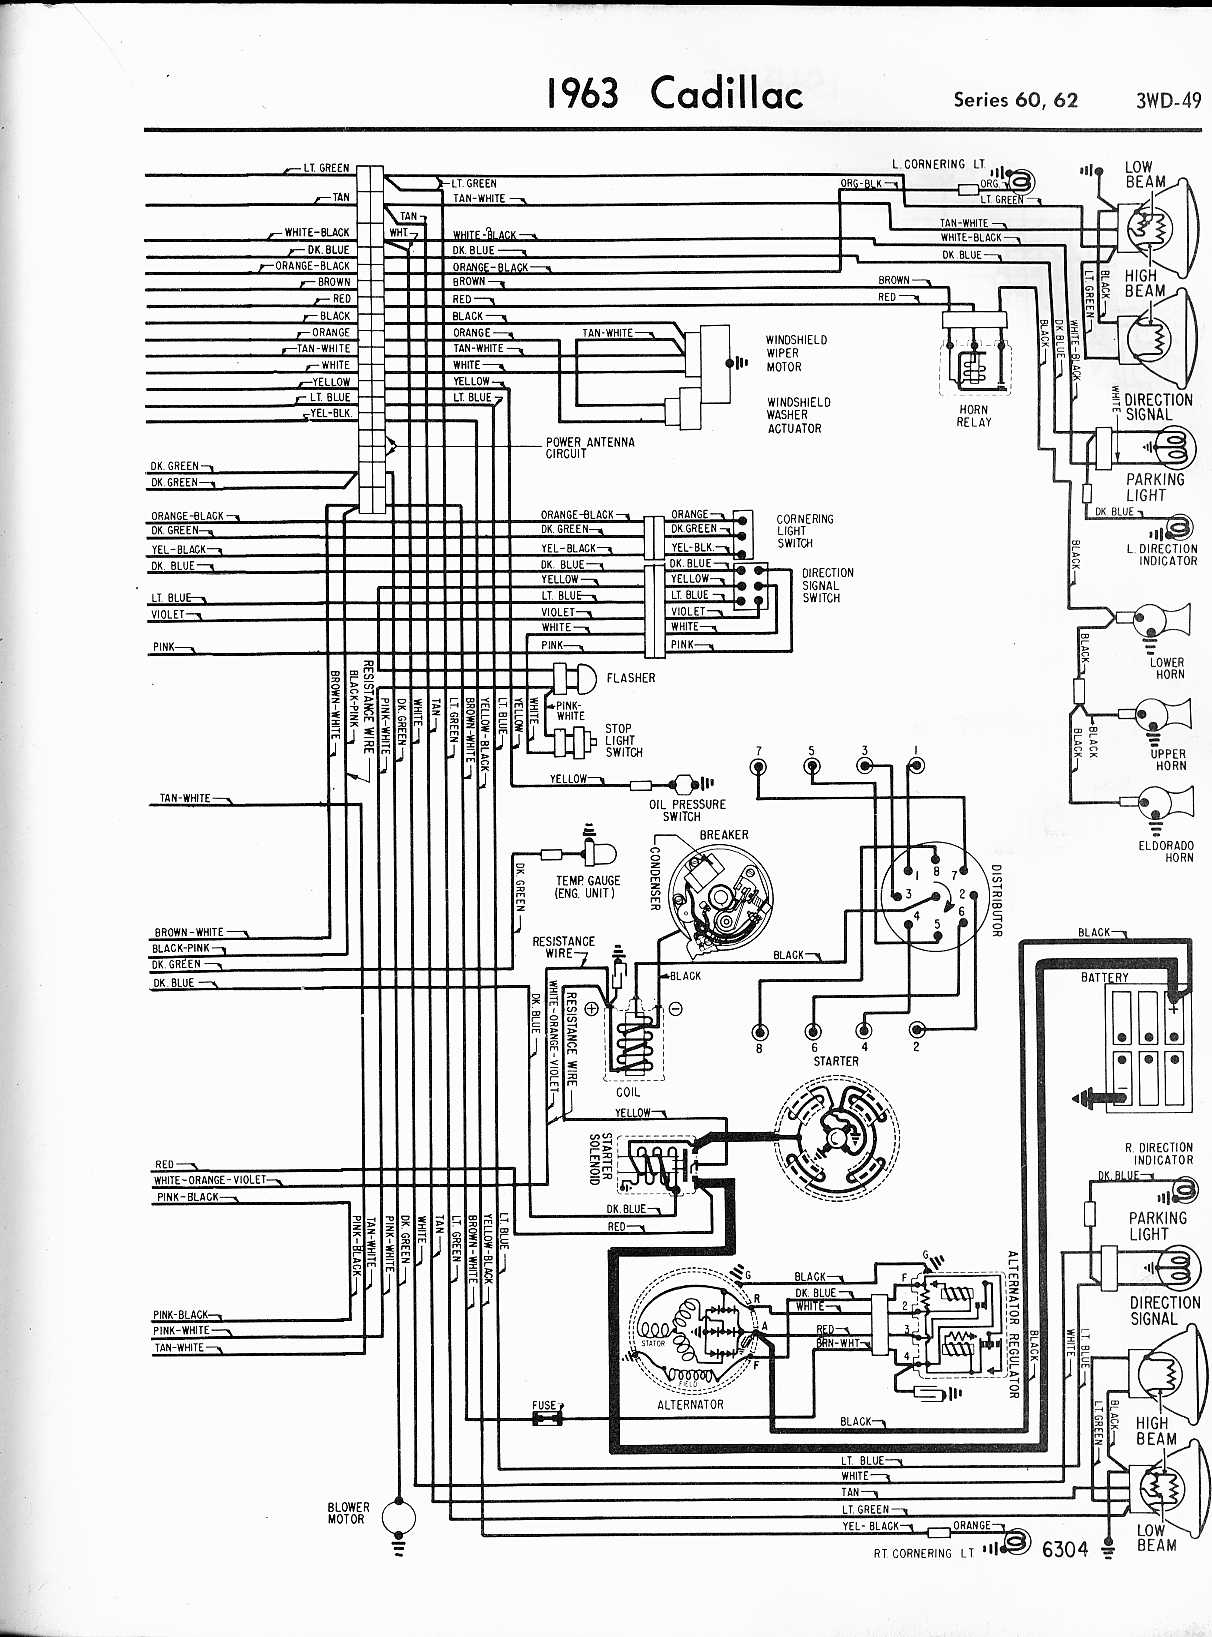 [TVPR_3874]  Cadillac Wiring Diagrams: 1957-1965 | 1966 Cadillac Alternator Wiring Diagram |  | The Old Car Manual Project